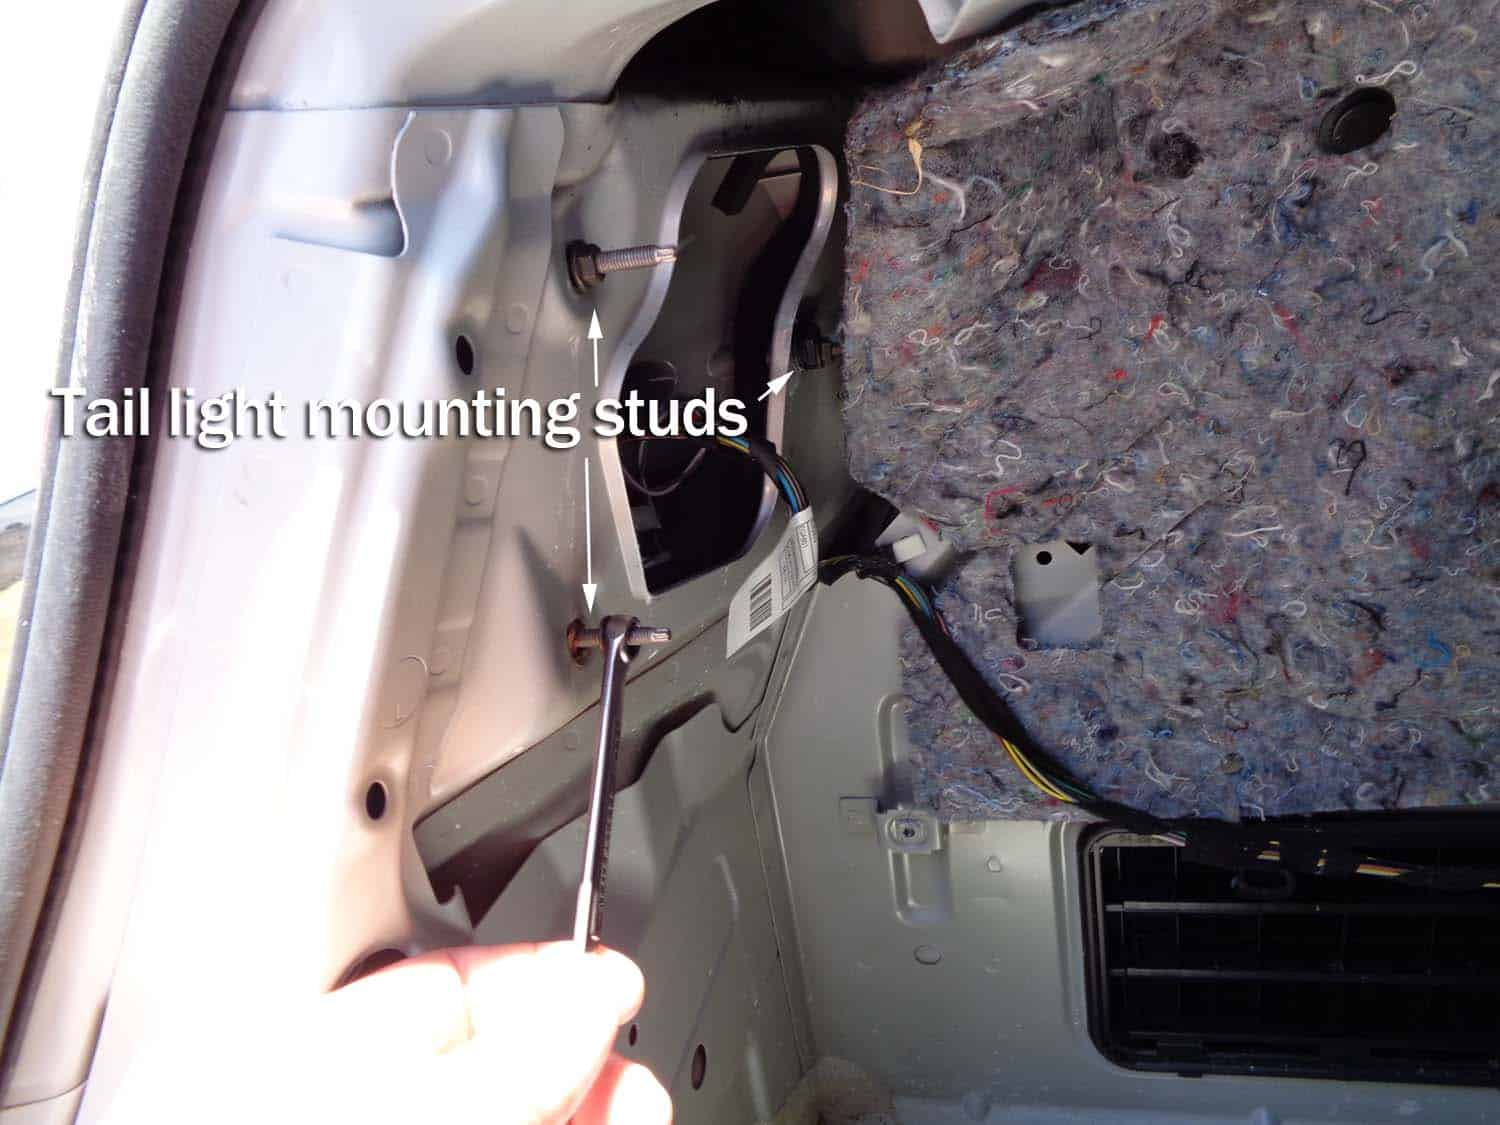 BMW E90 Trunk Leak - remove the tail light mounting nuts